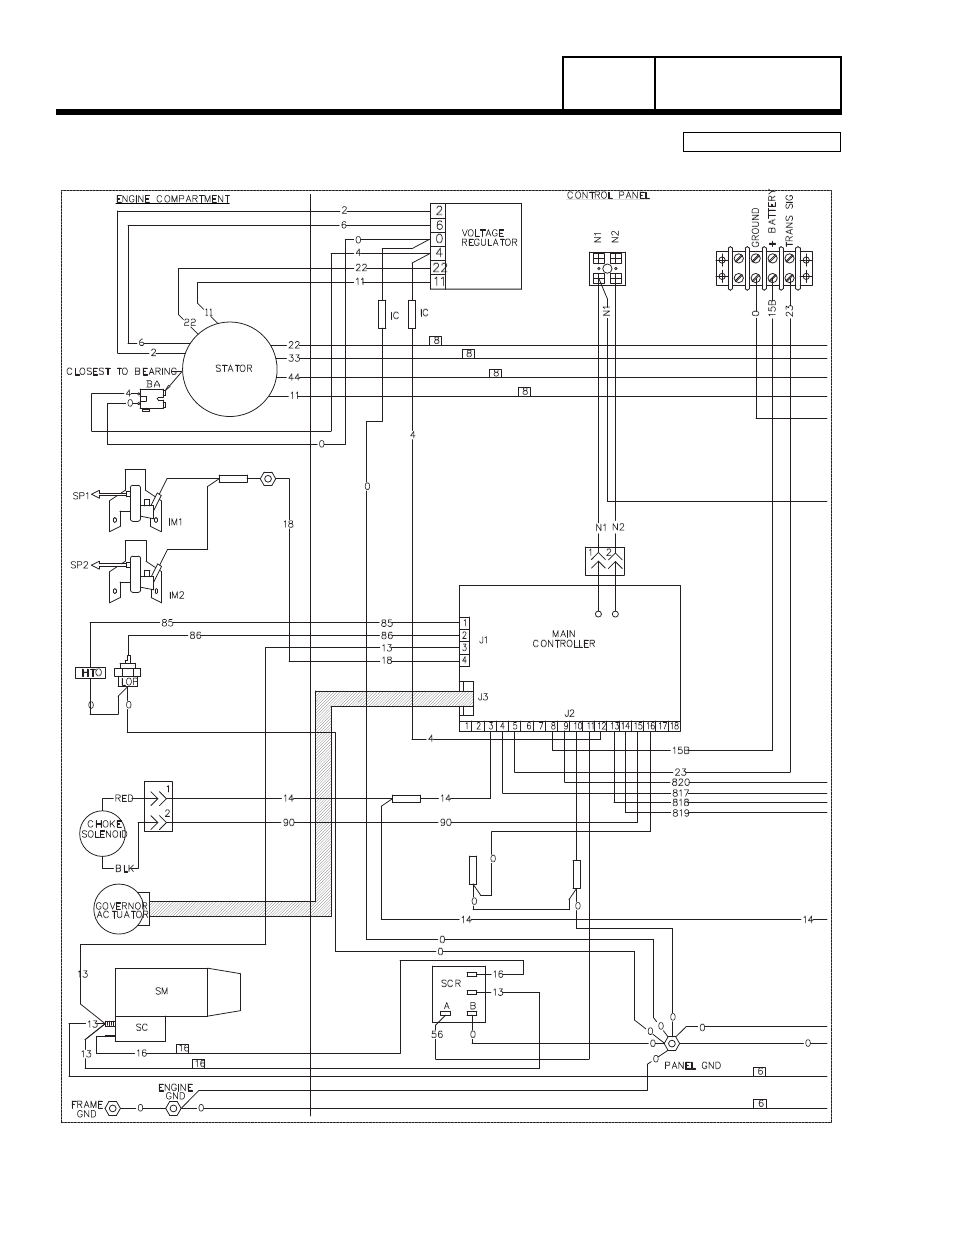 generac 20kw generator wiring diagram of a tropical forest 8 kw schematic 20 home standby group g part 7 power